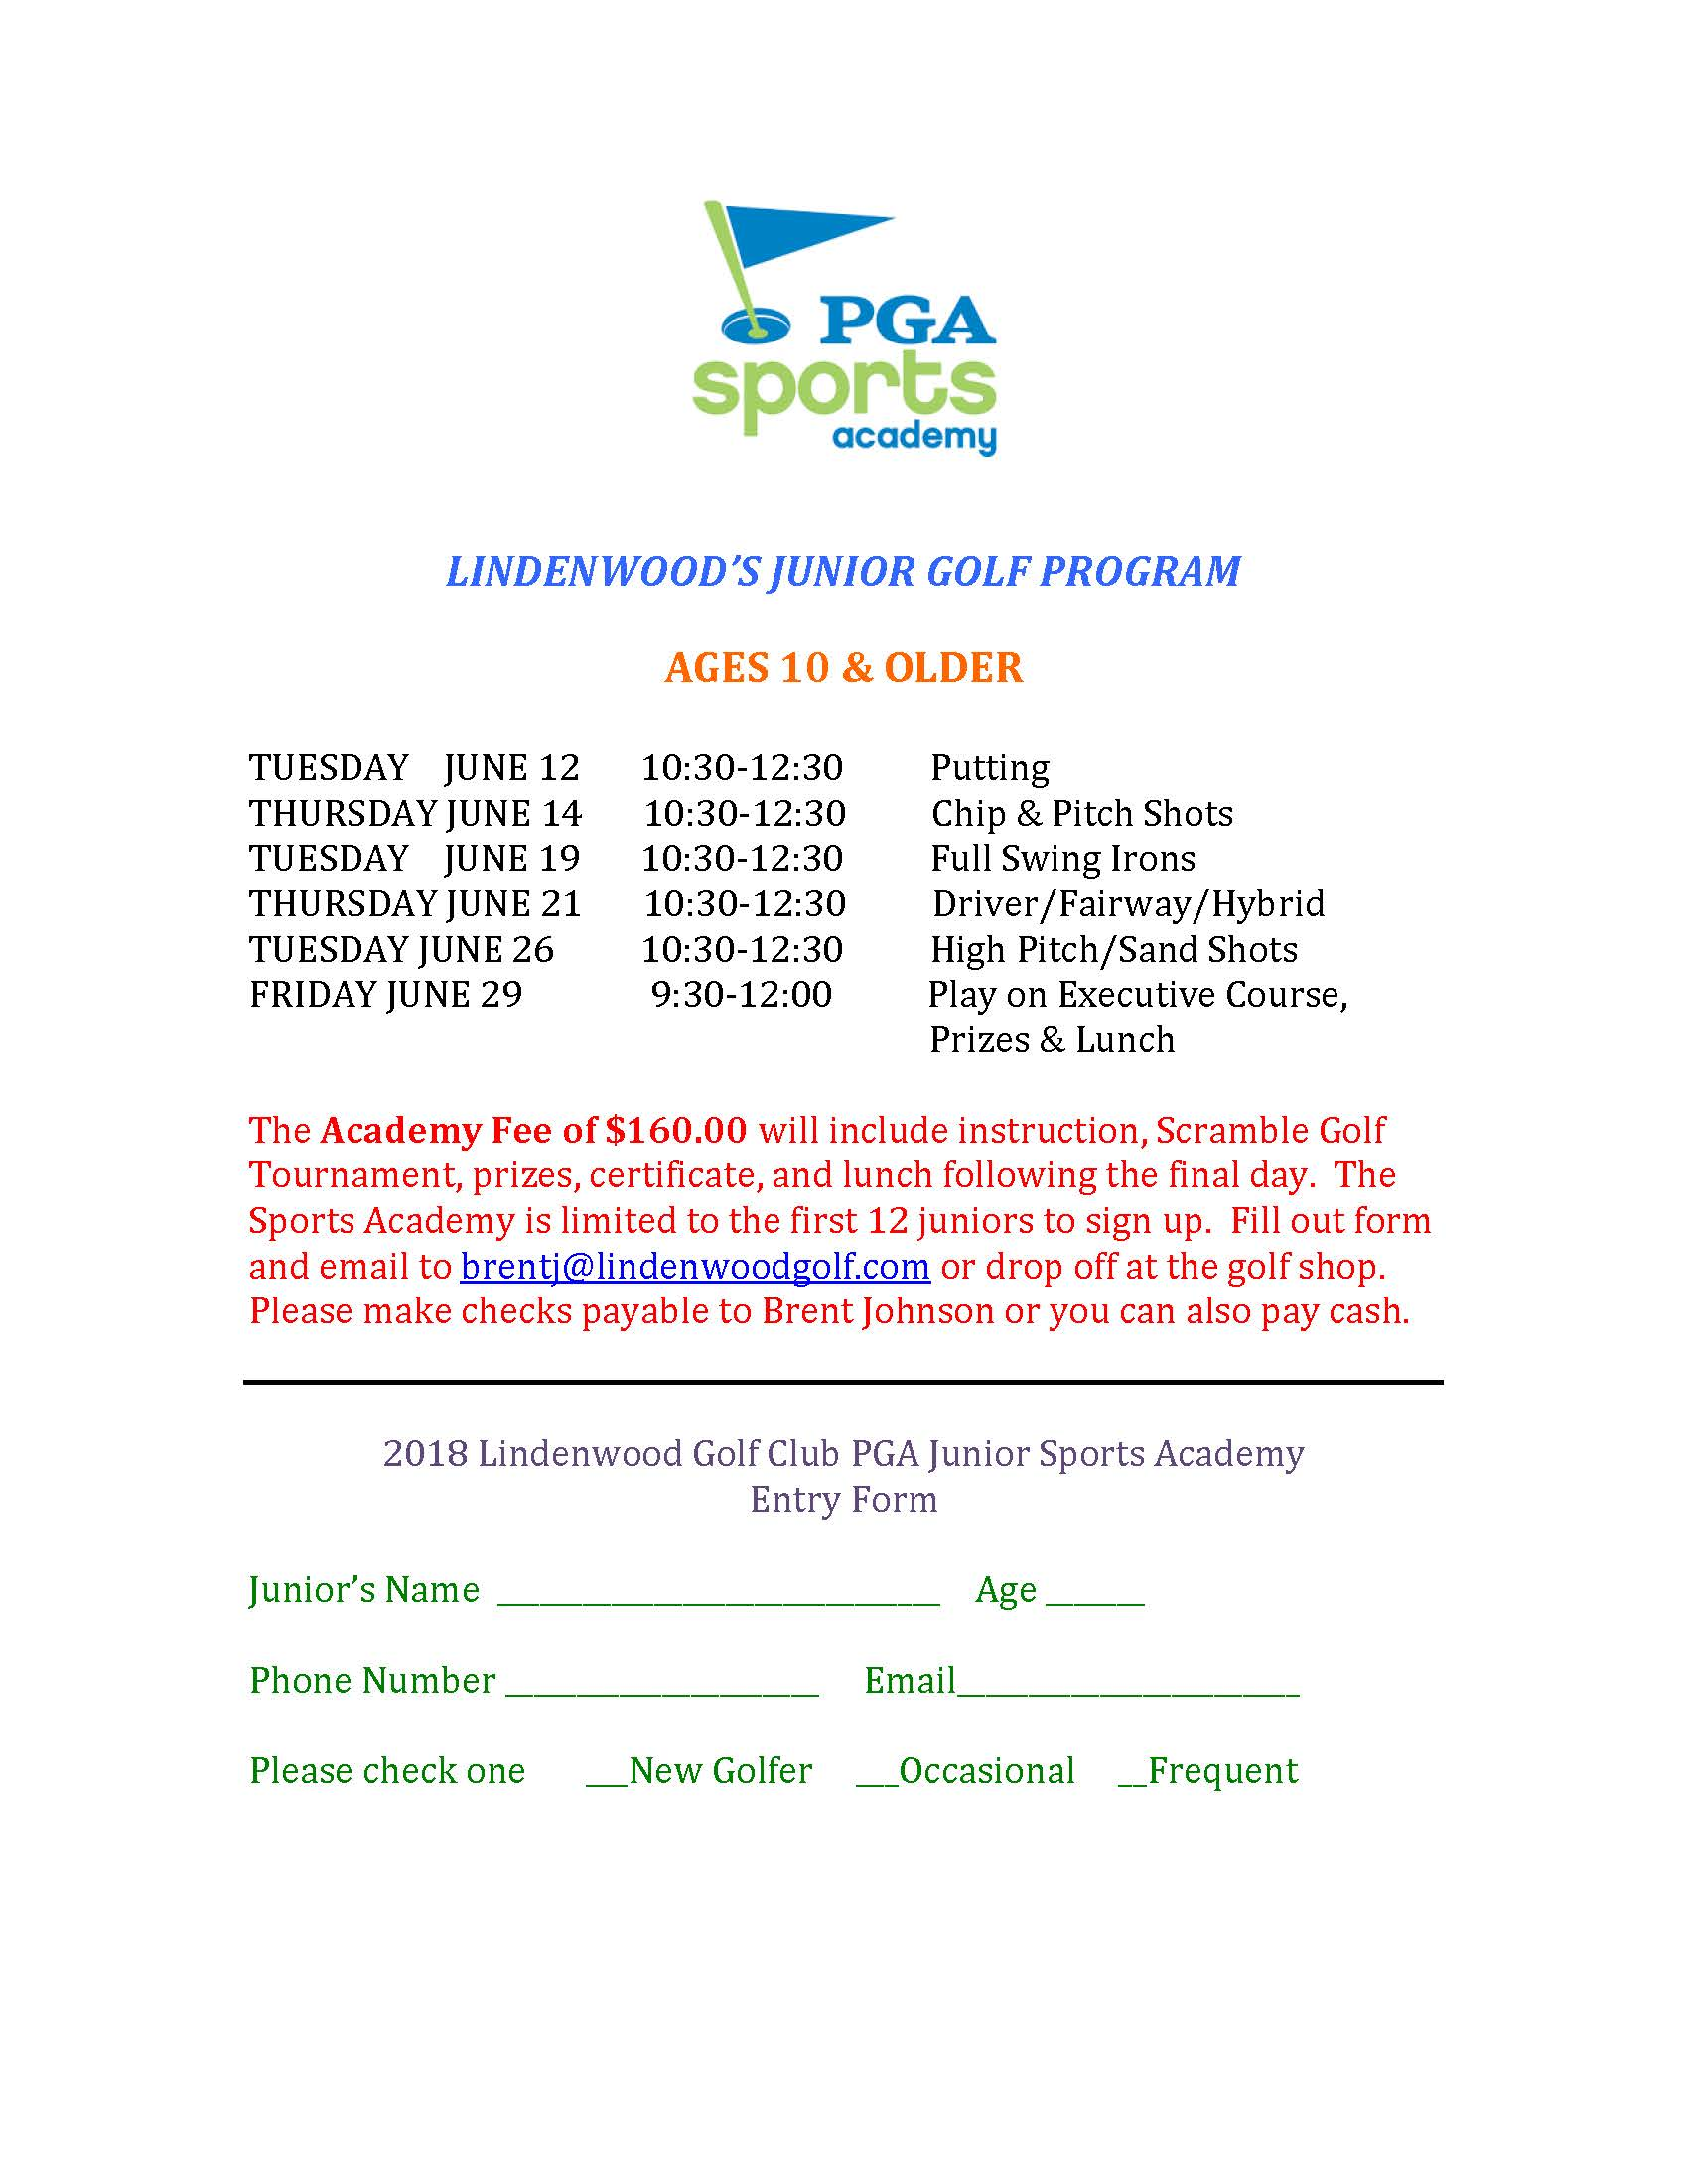 PGA Sports Academy Lindenwood Golf Clubs Junior Golf Ages 10 Older